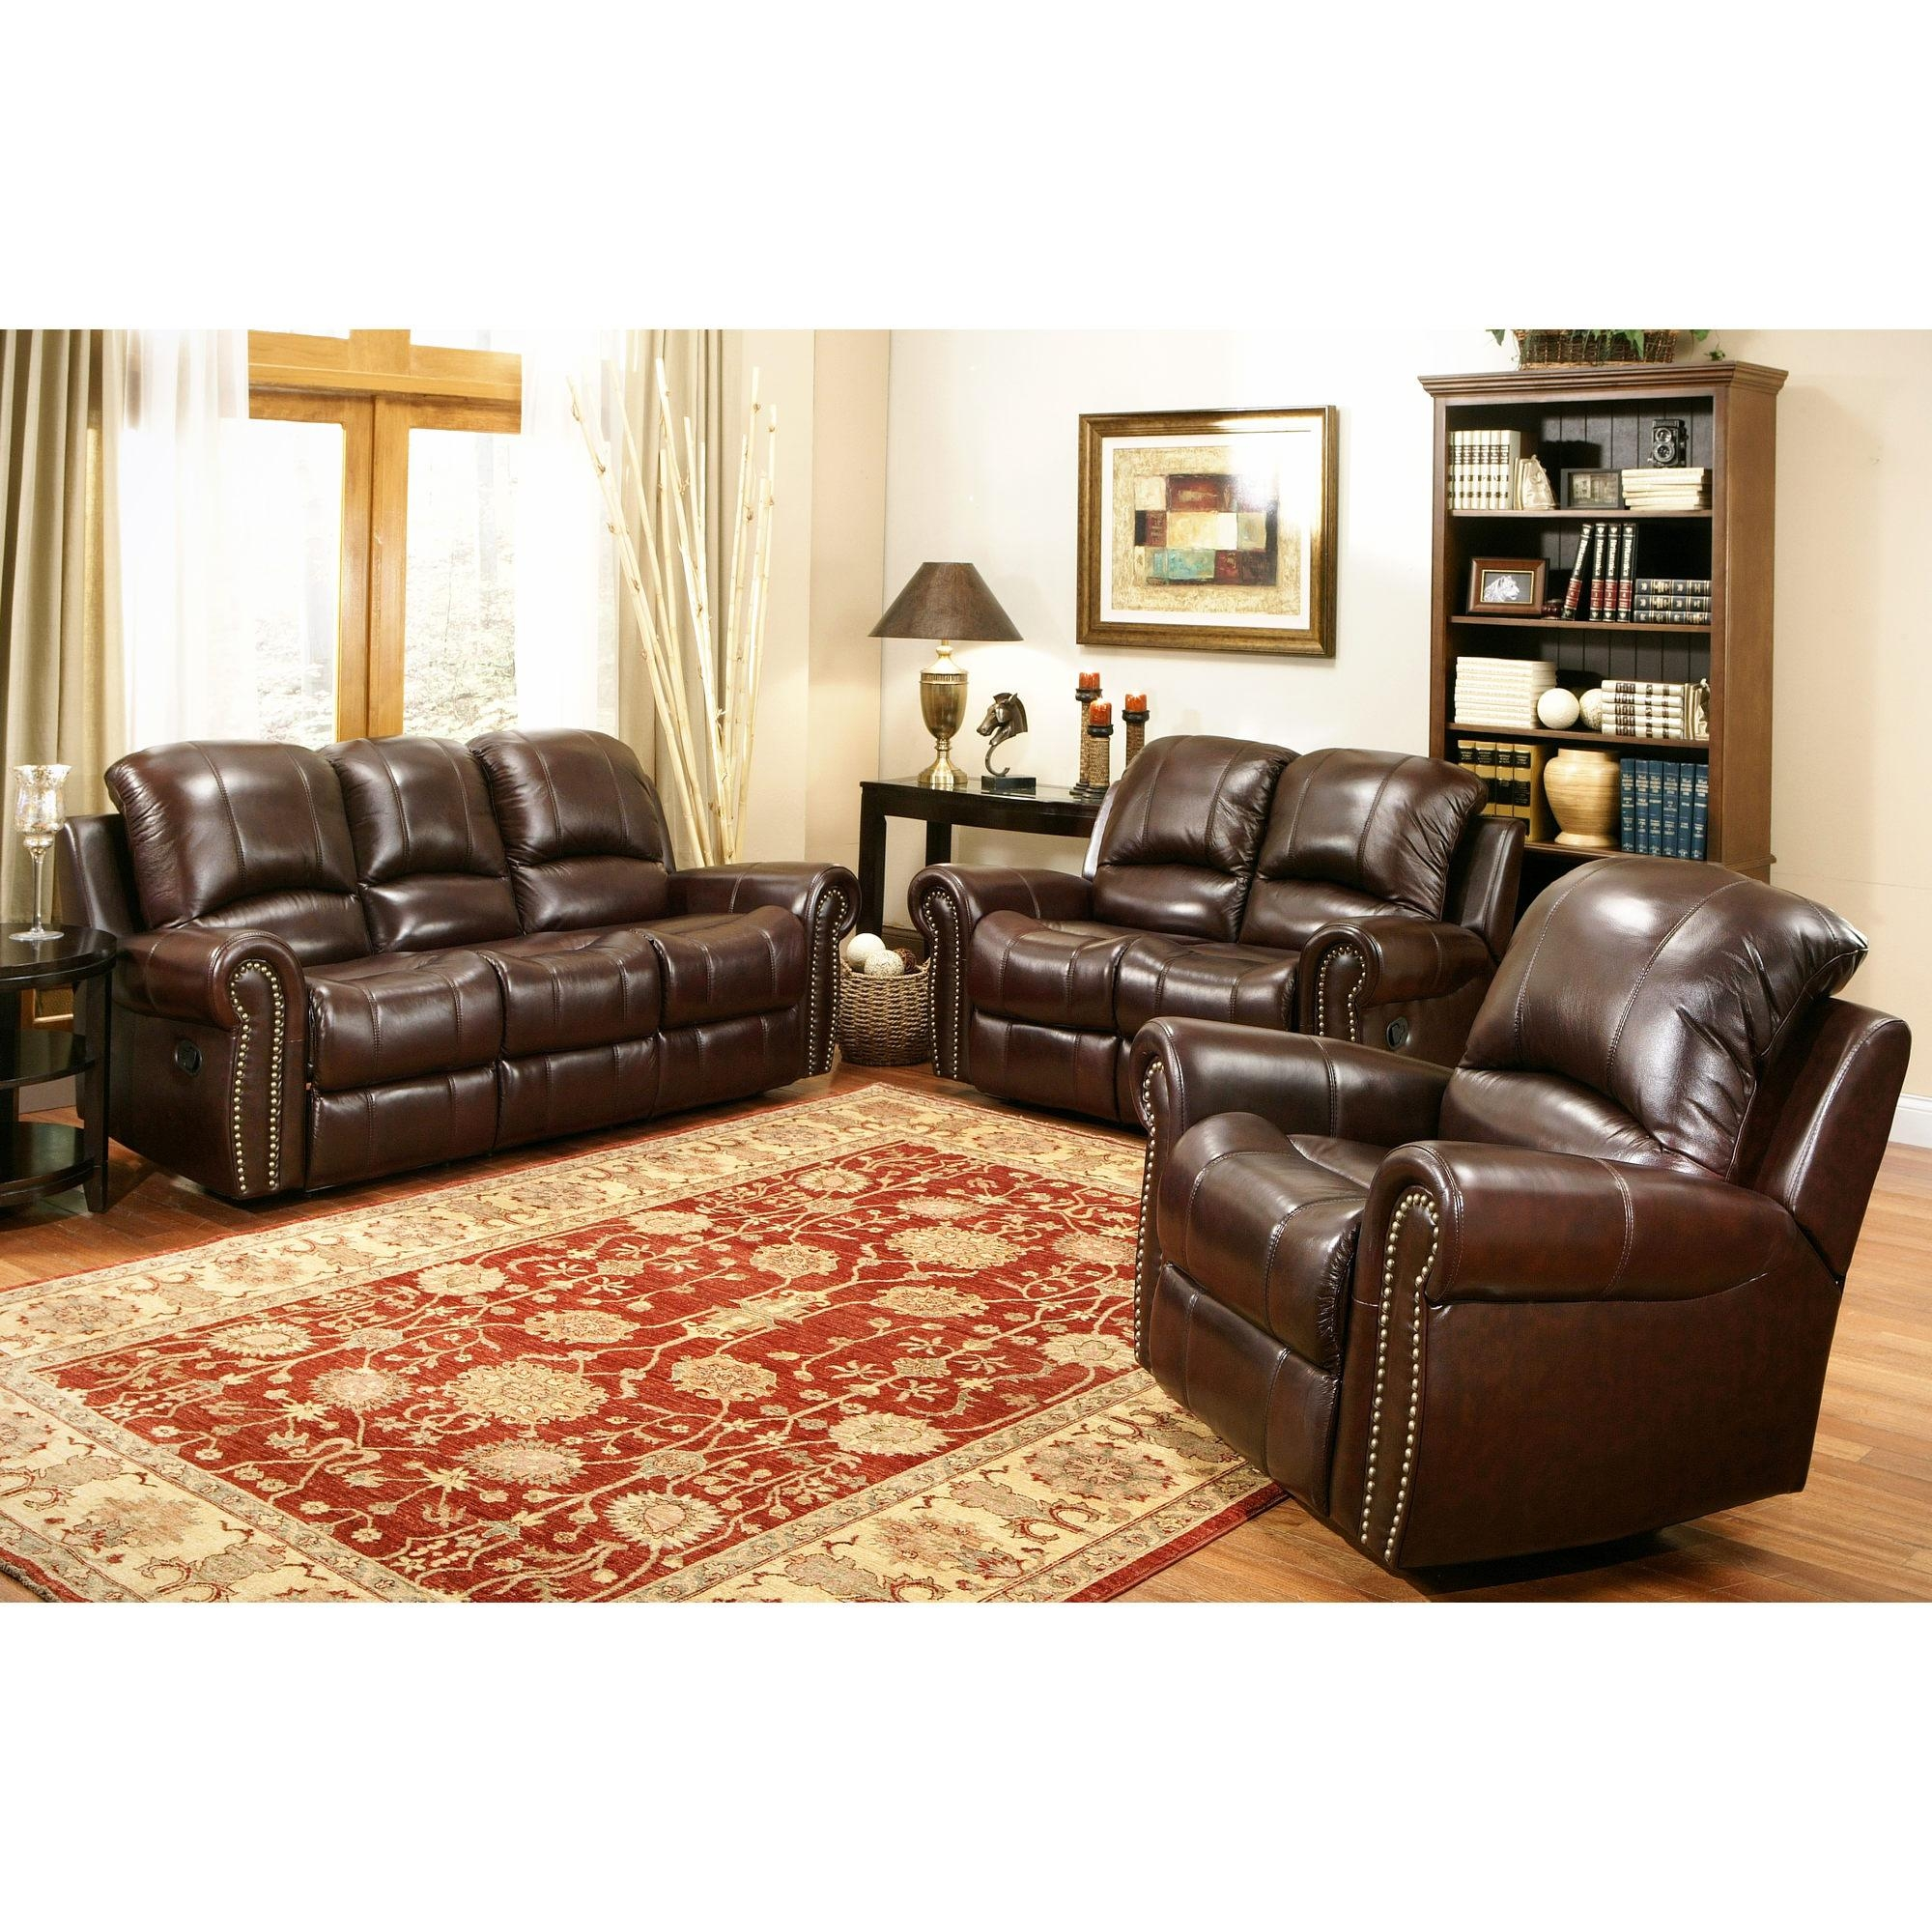 Abbyson sofa abbyson living beverly leather sofa in for Antigua wicker chaise